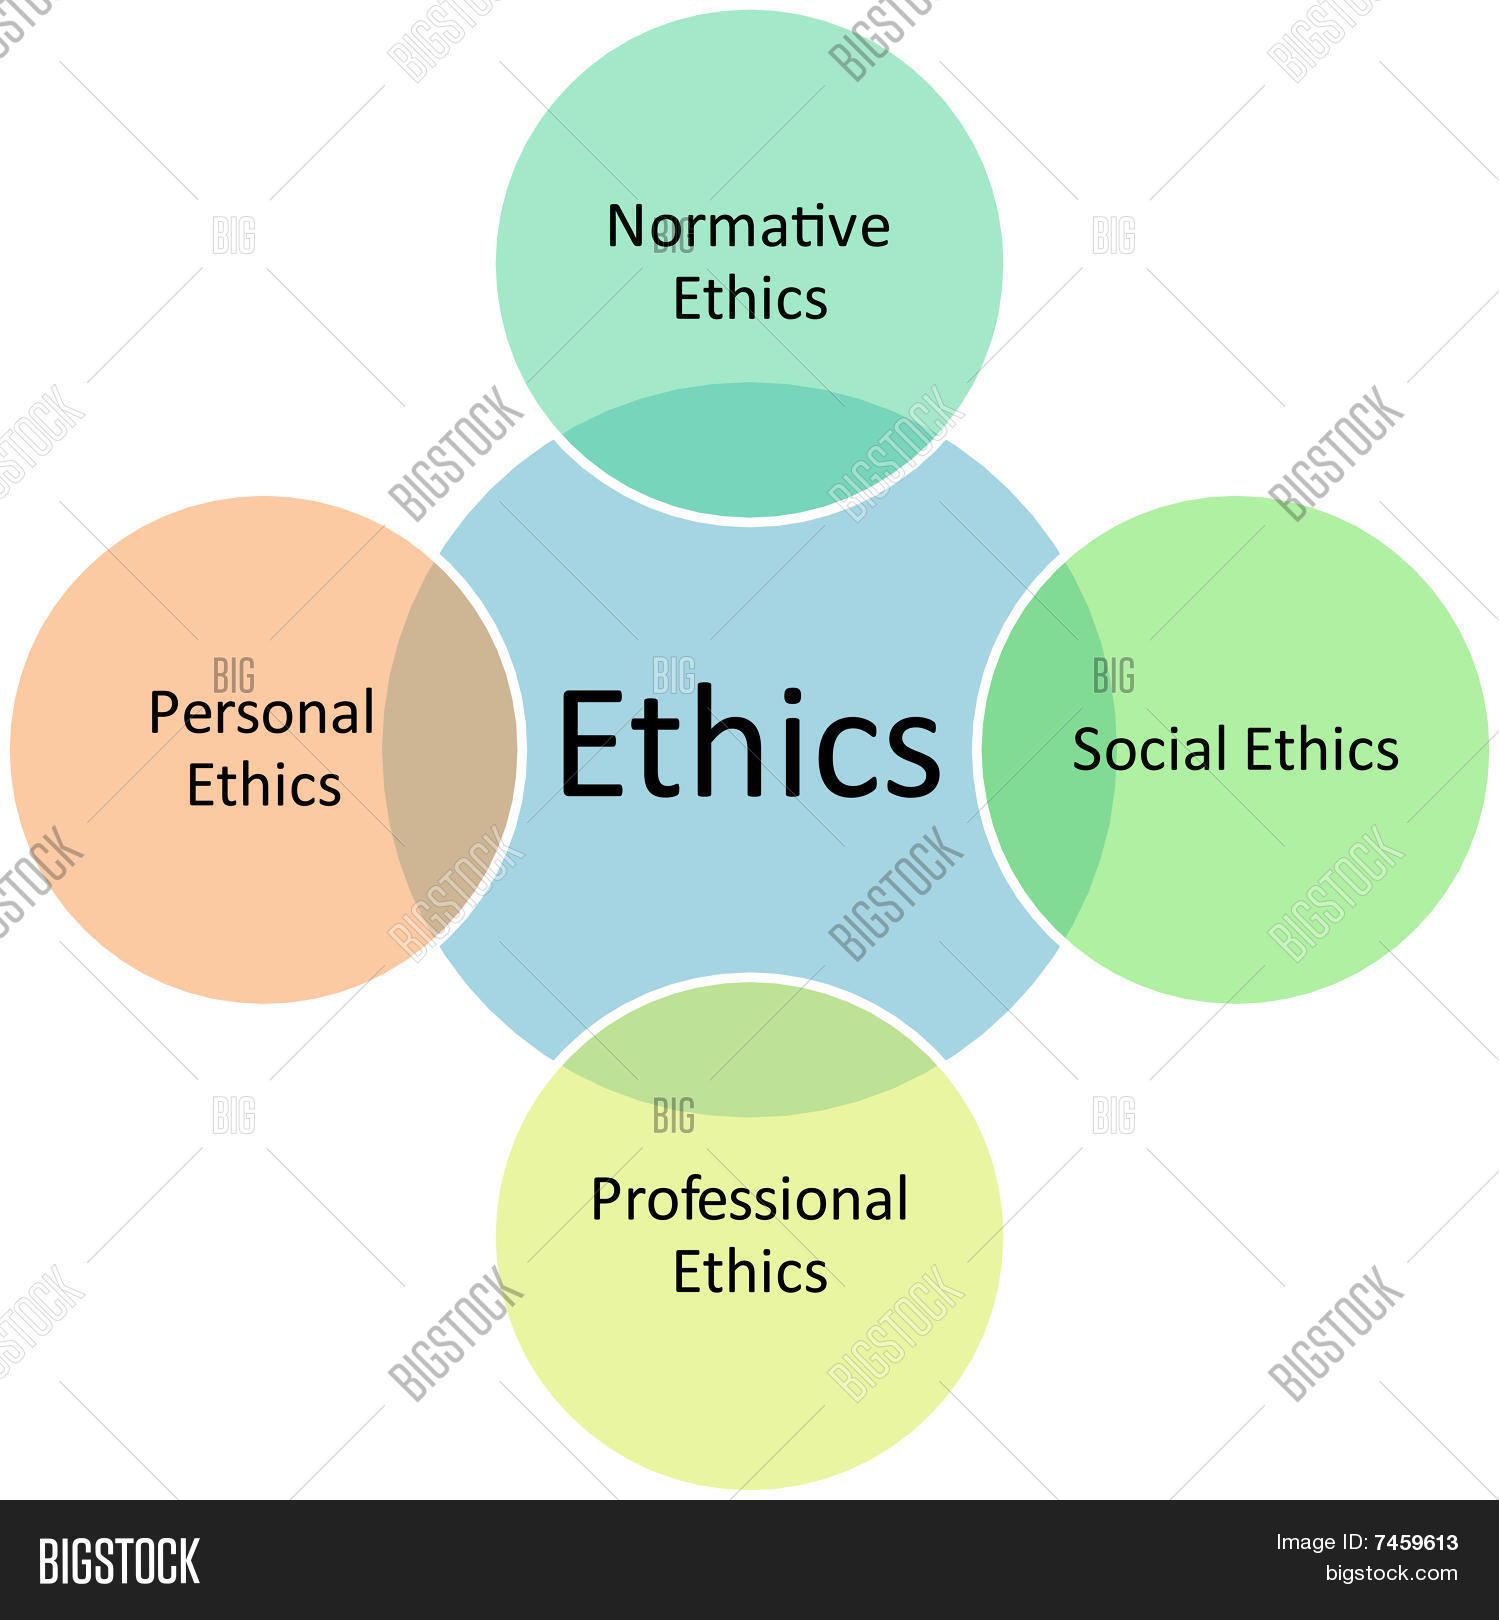 ethics types business diagram stock photo stock images bigstock ethics types business diagram